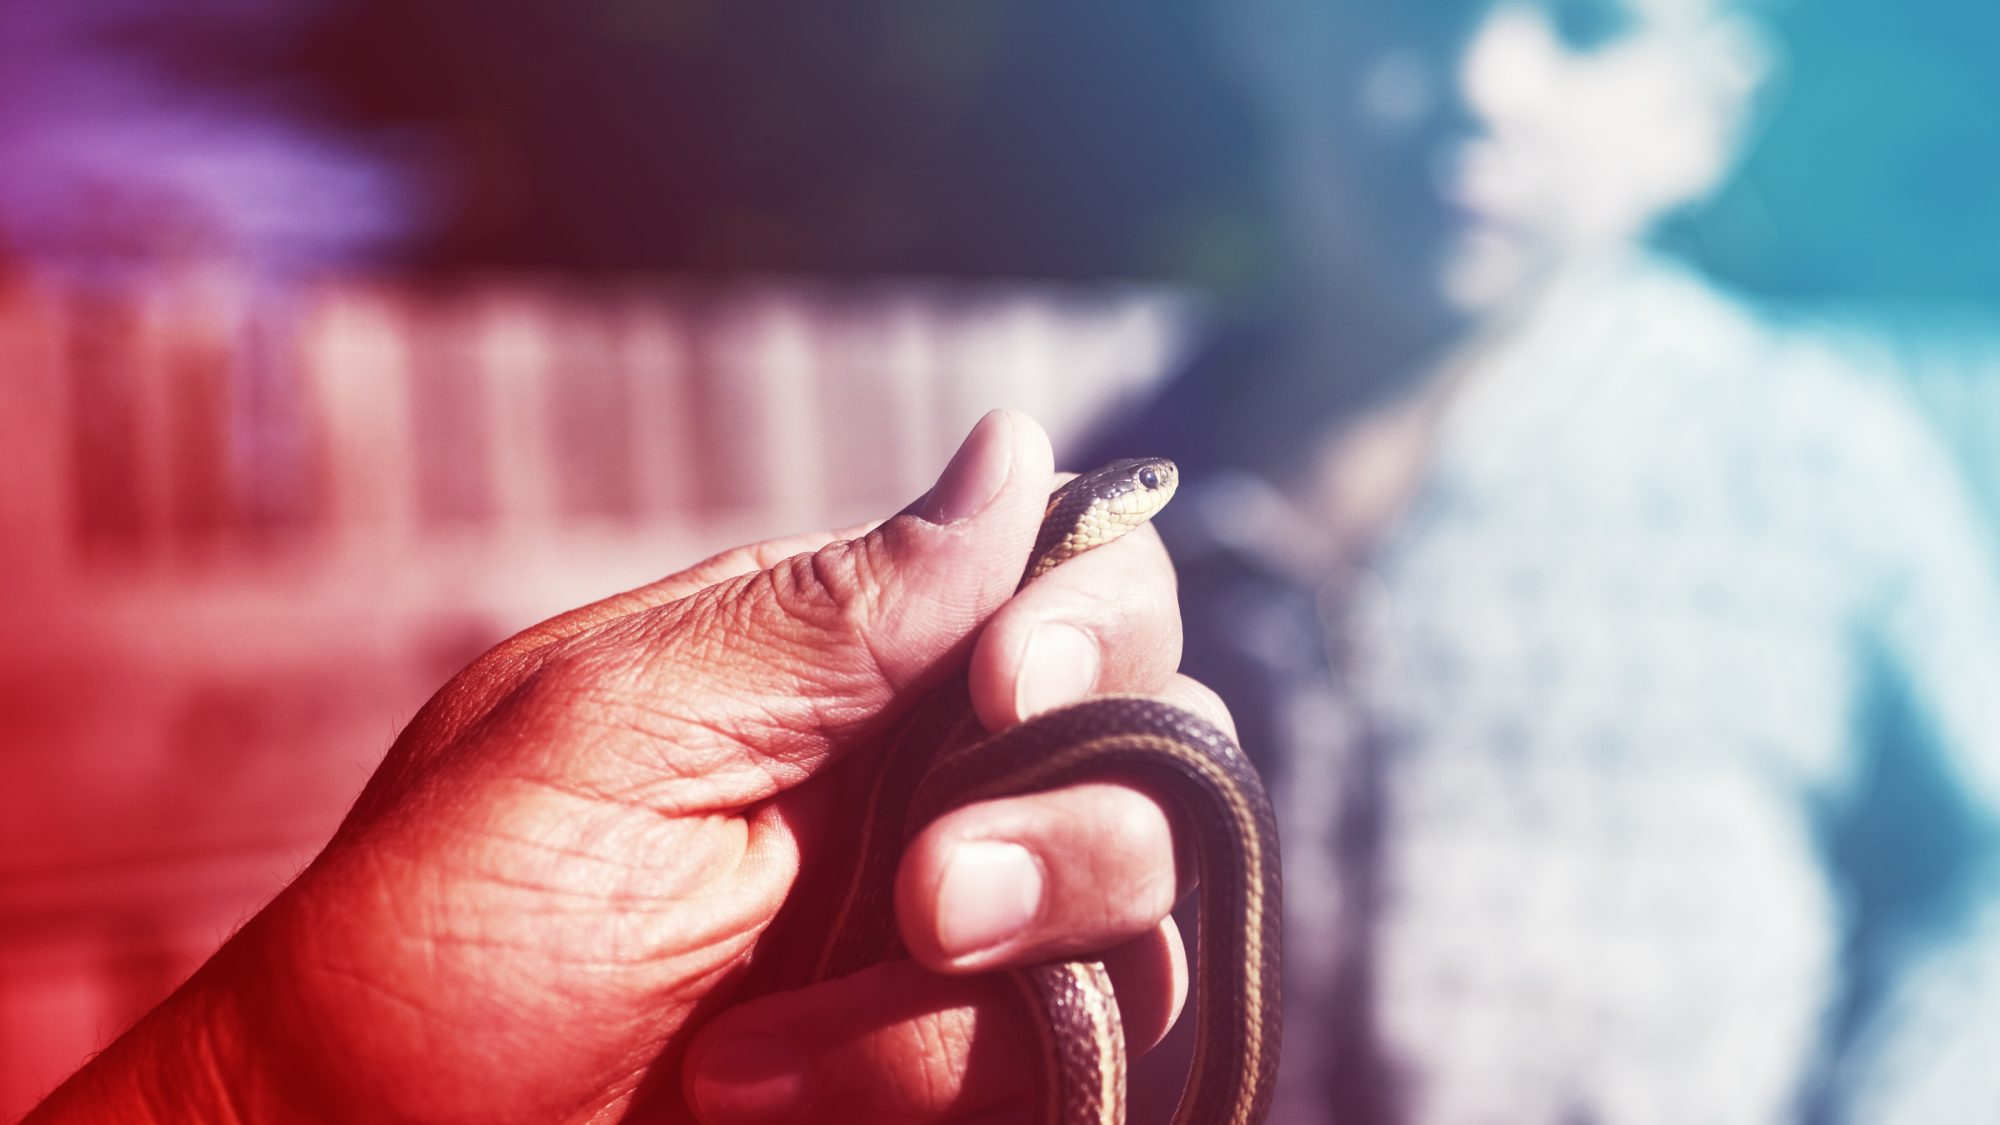 Snake-Bite-Lands-5-Year-Old-In-Hospital-Now-Mom-Warns-Other-Patients-AdobeStock_114211946